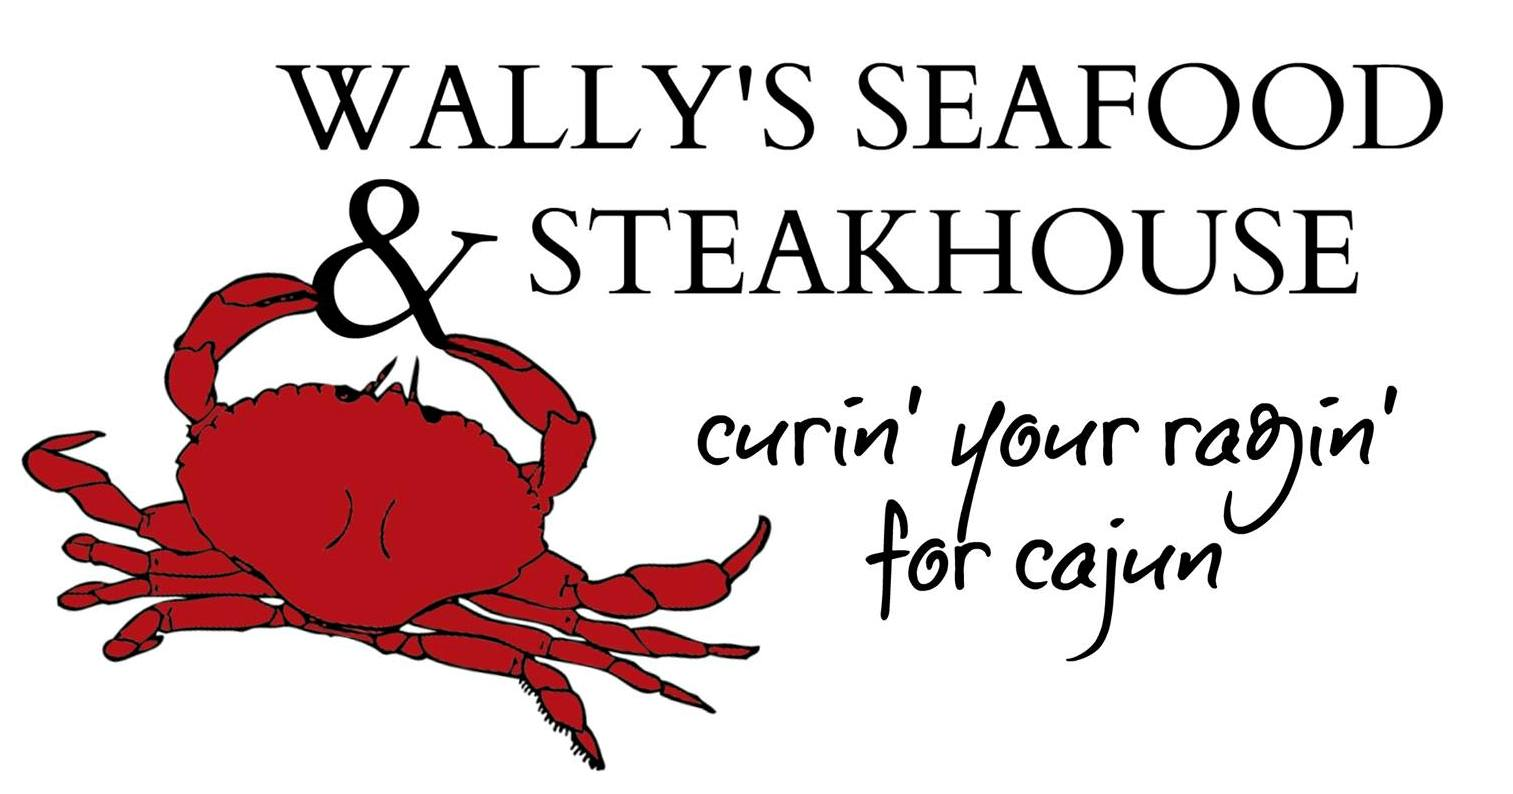 Wally's Seafood & Steakhouse